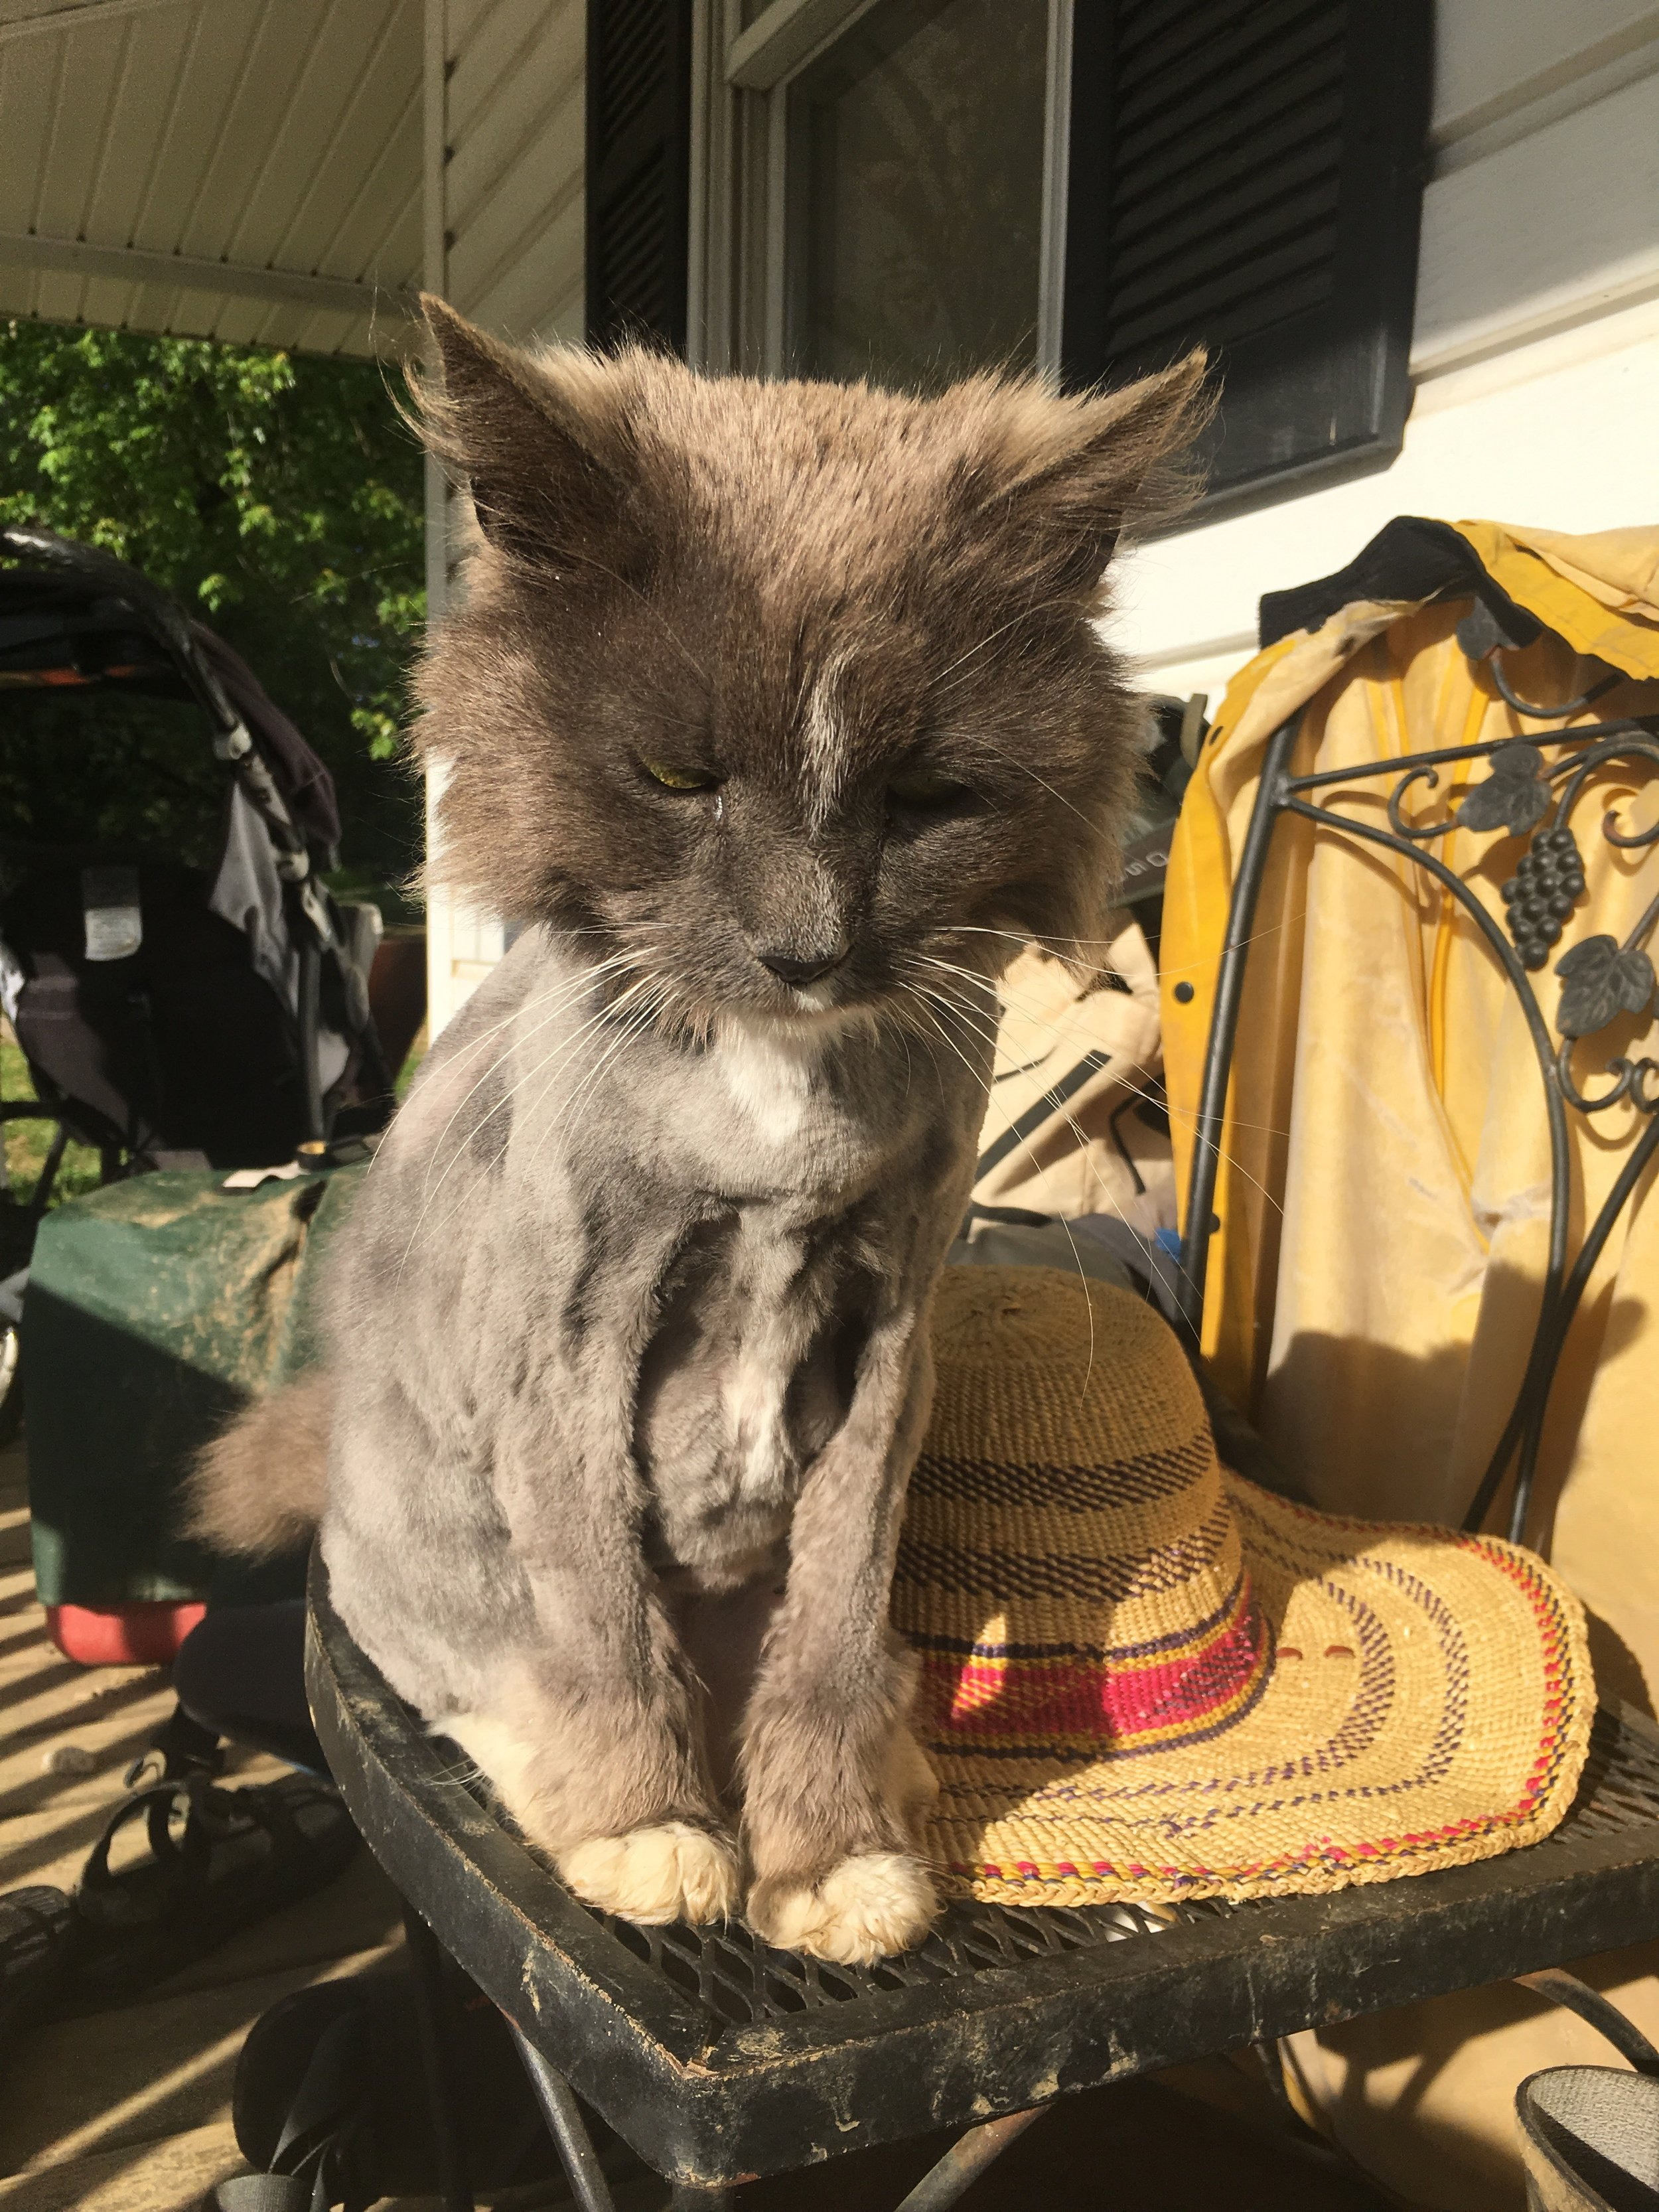 Our sweet farm cat, Gray, received her annual shave this week. She's feeling great and ready for the summer heat!